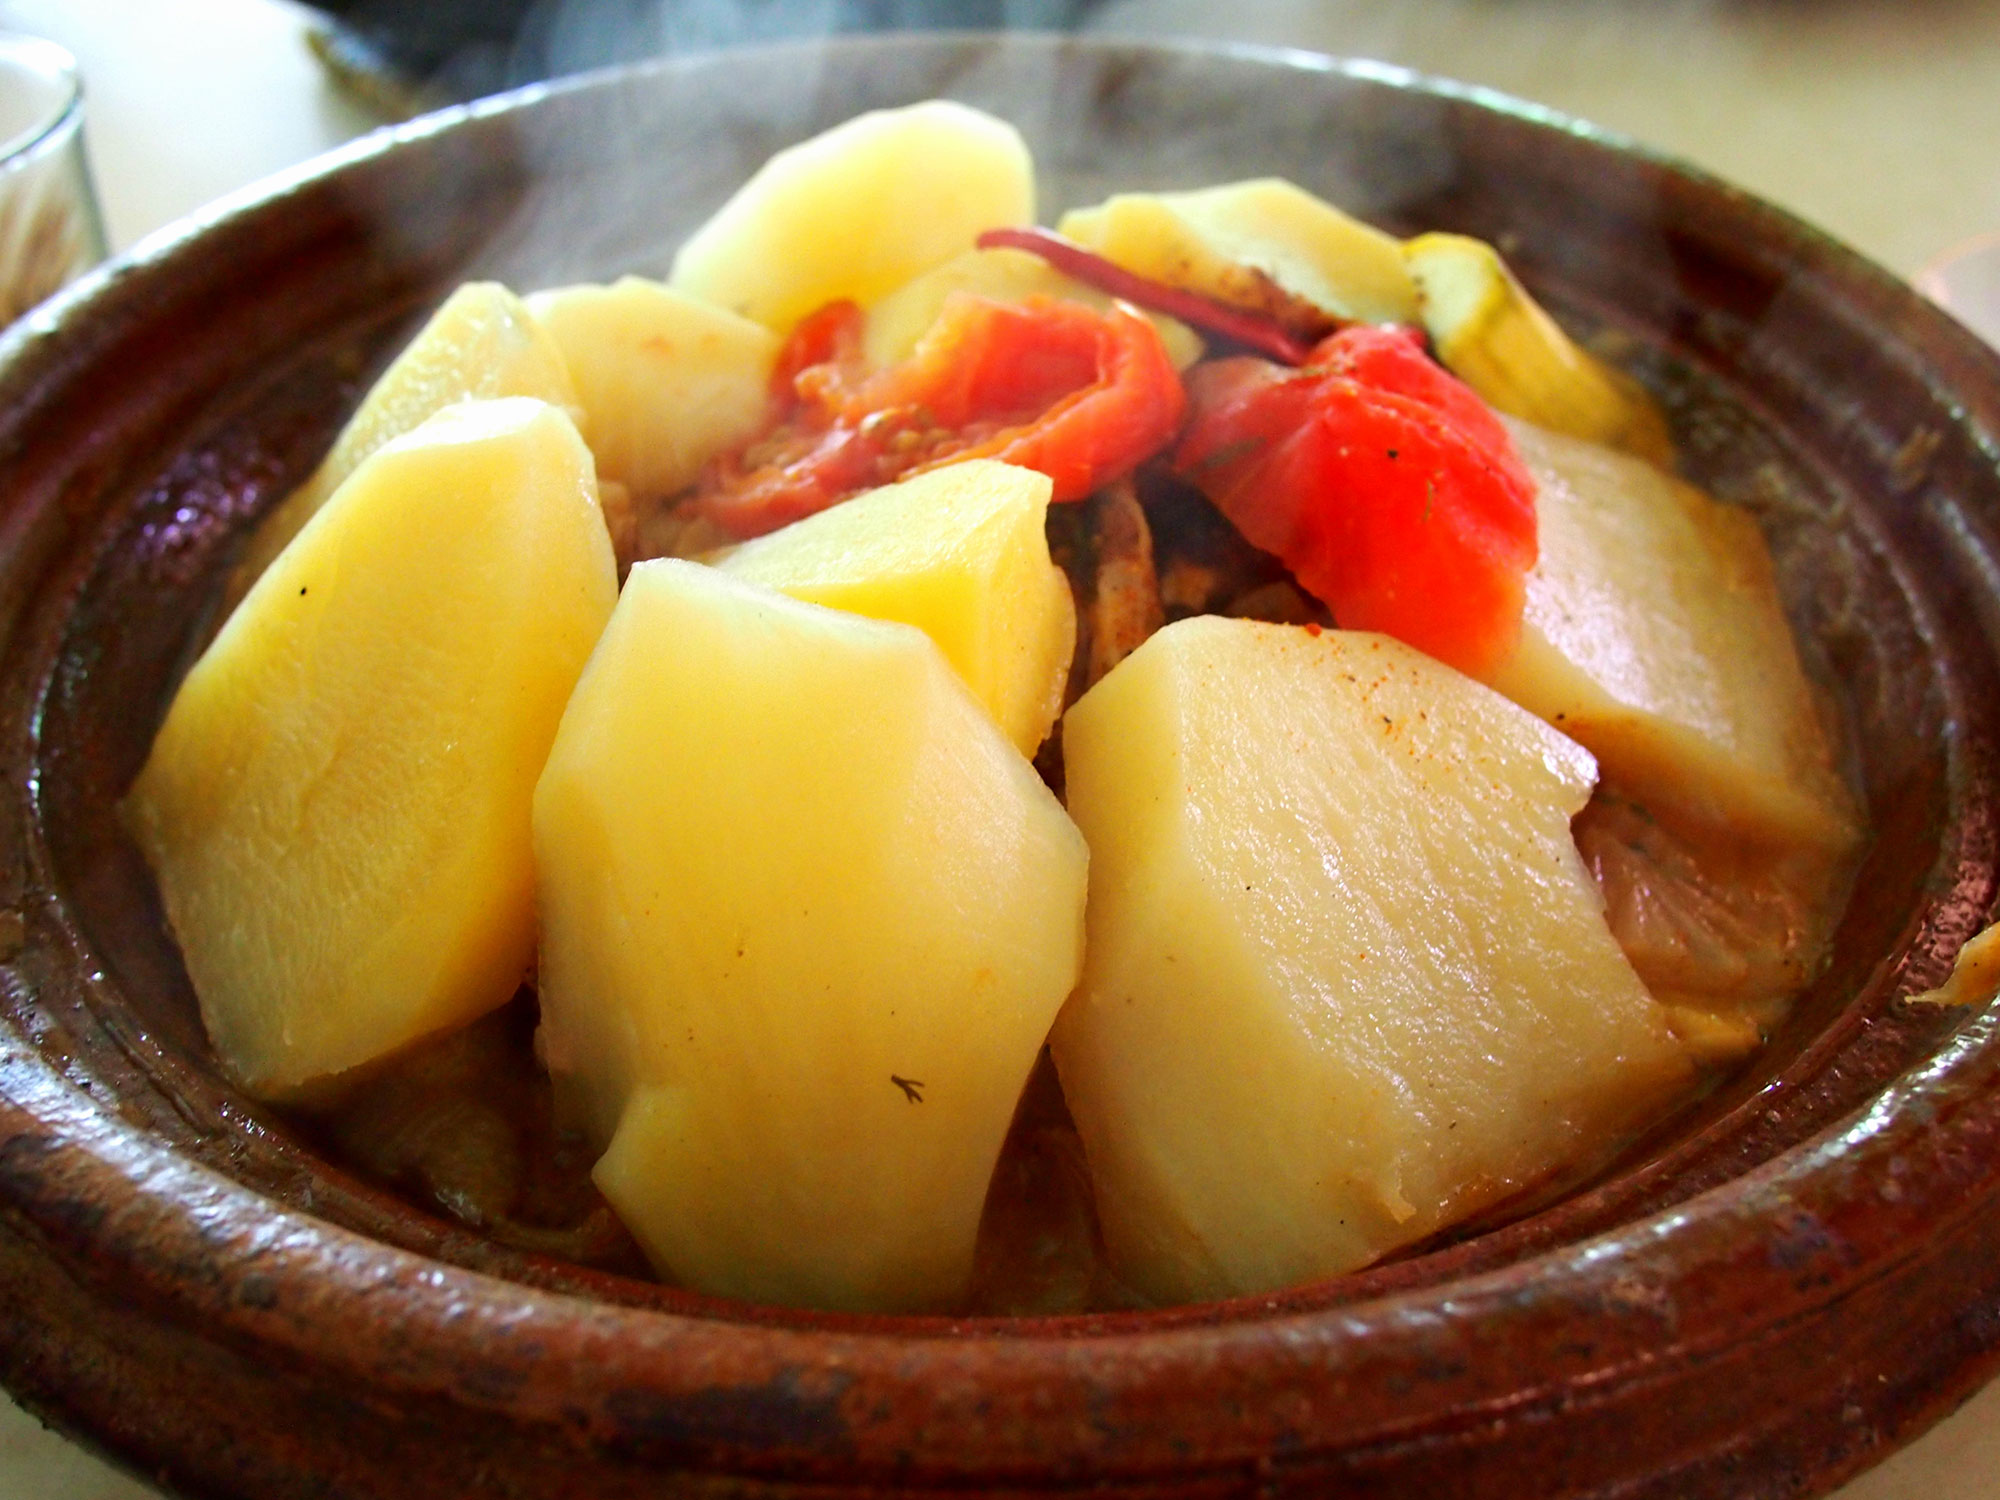 Potatoes cover up the meat and vegetables below in this chicken tagine from Morocco.